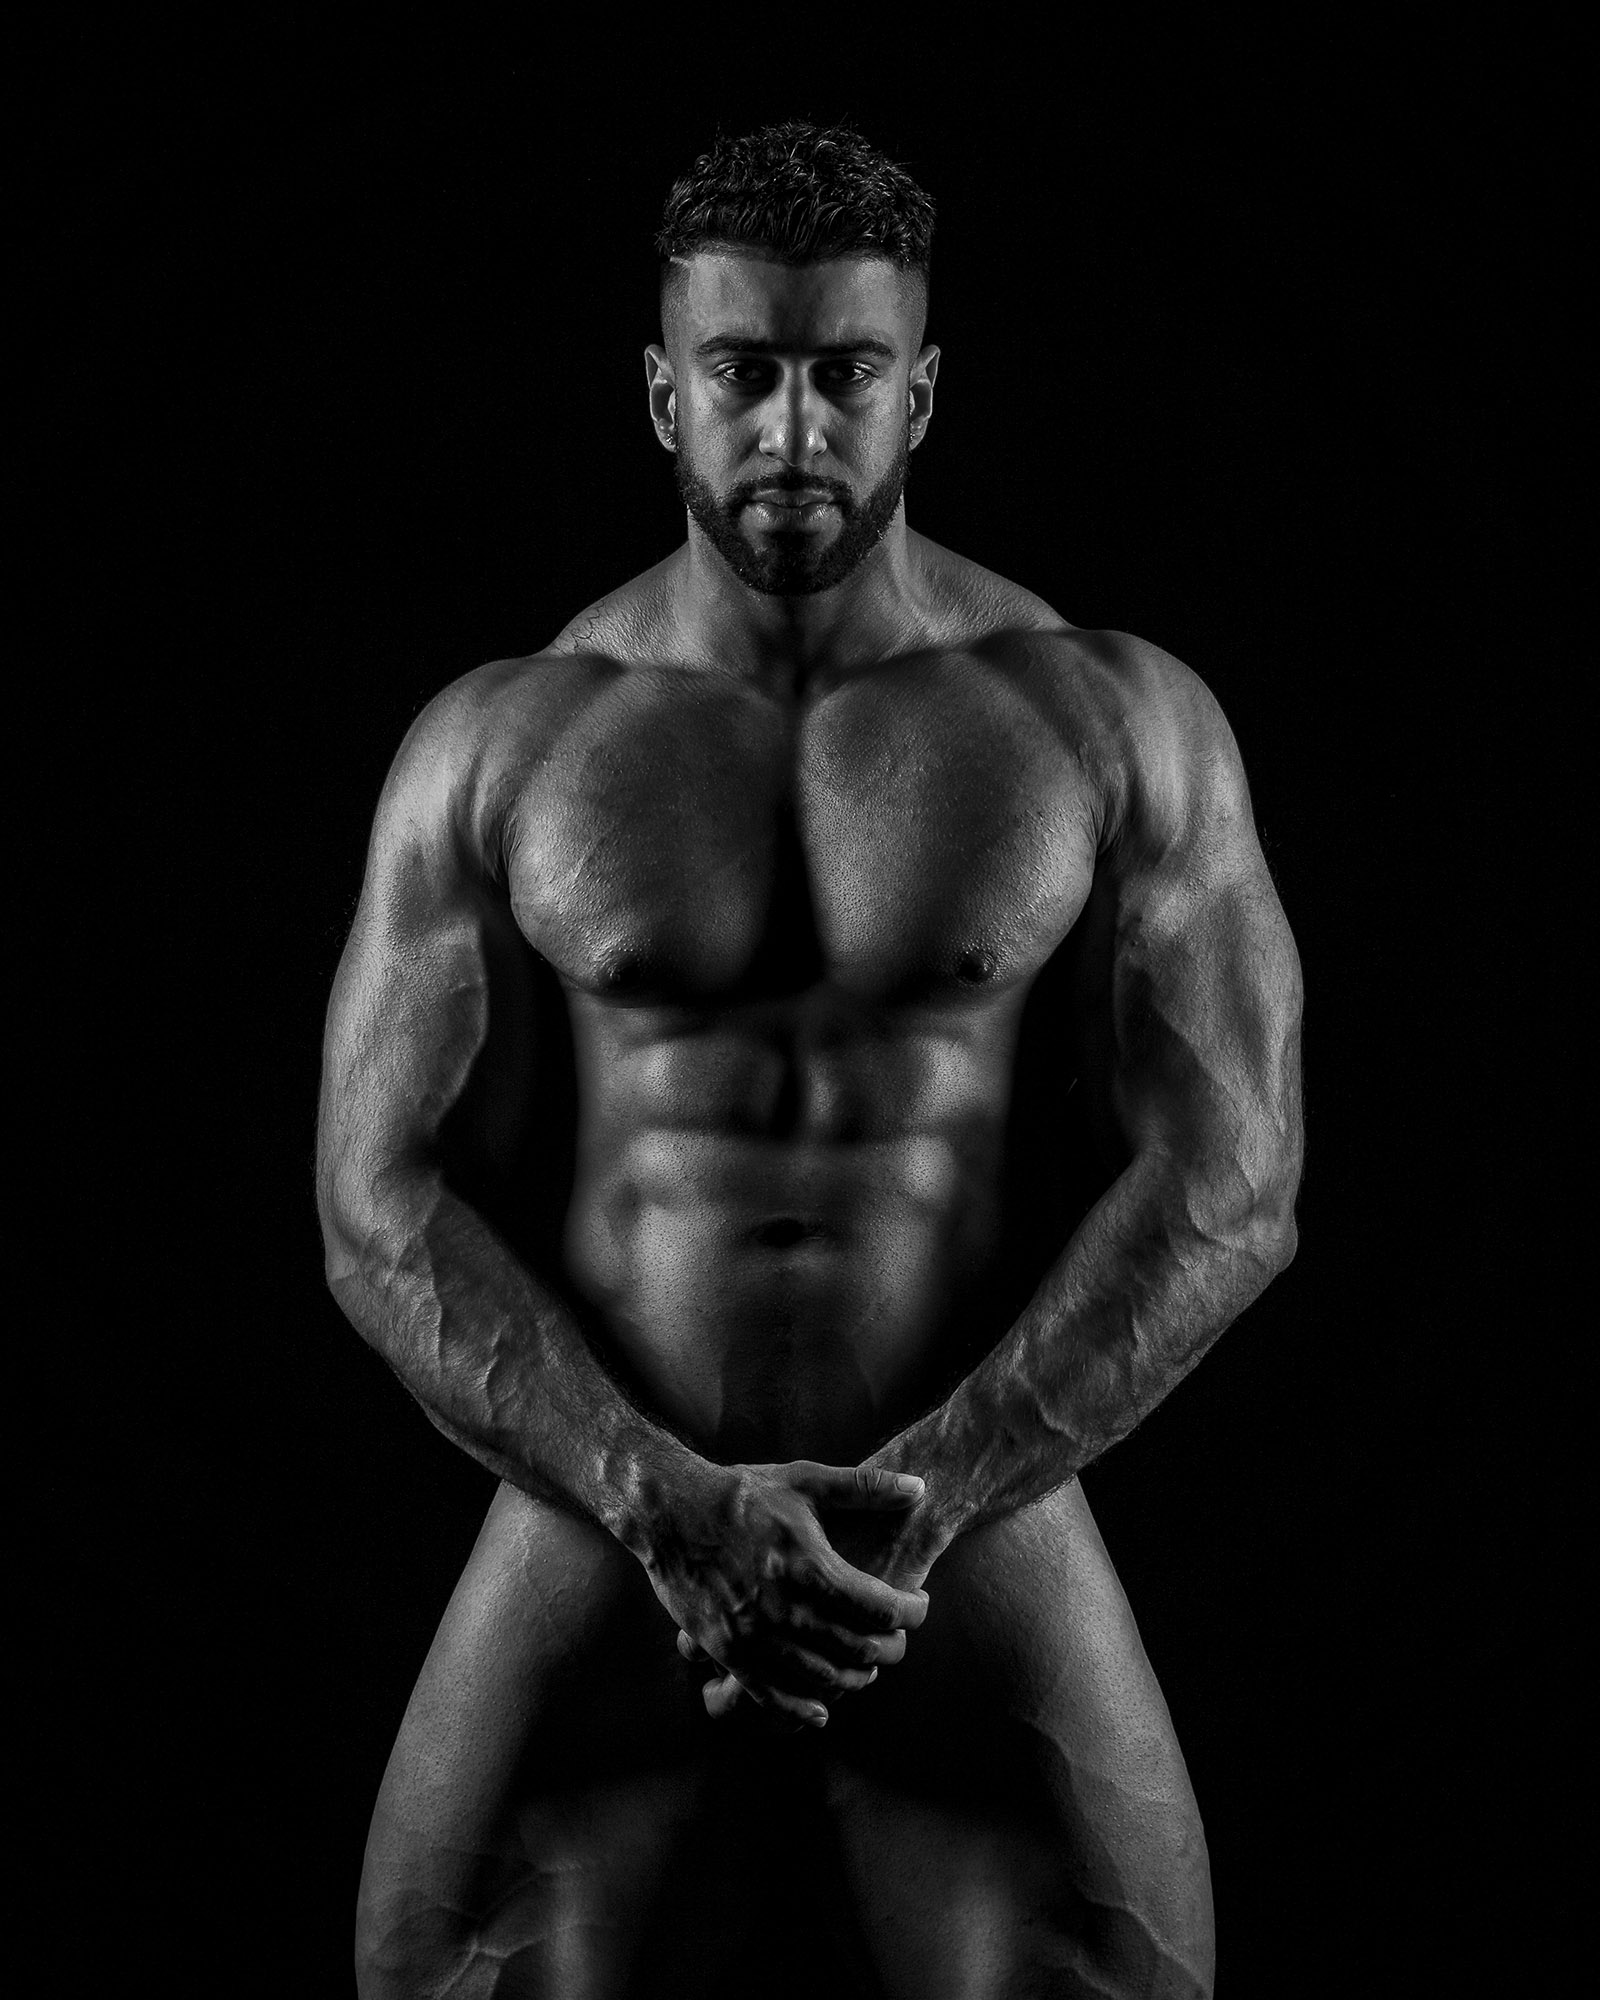 Using side light to highlight the physique.